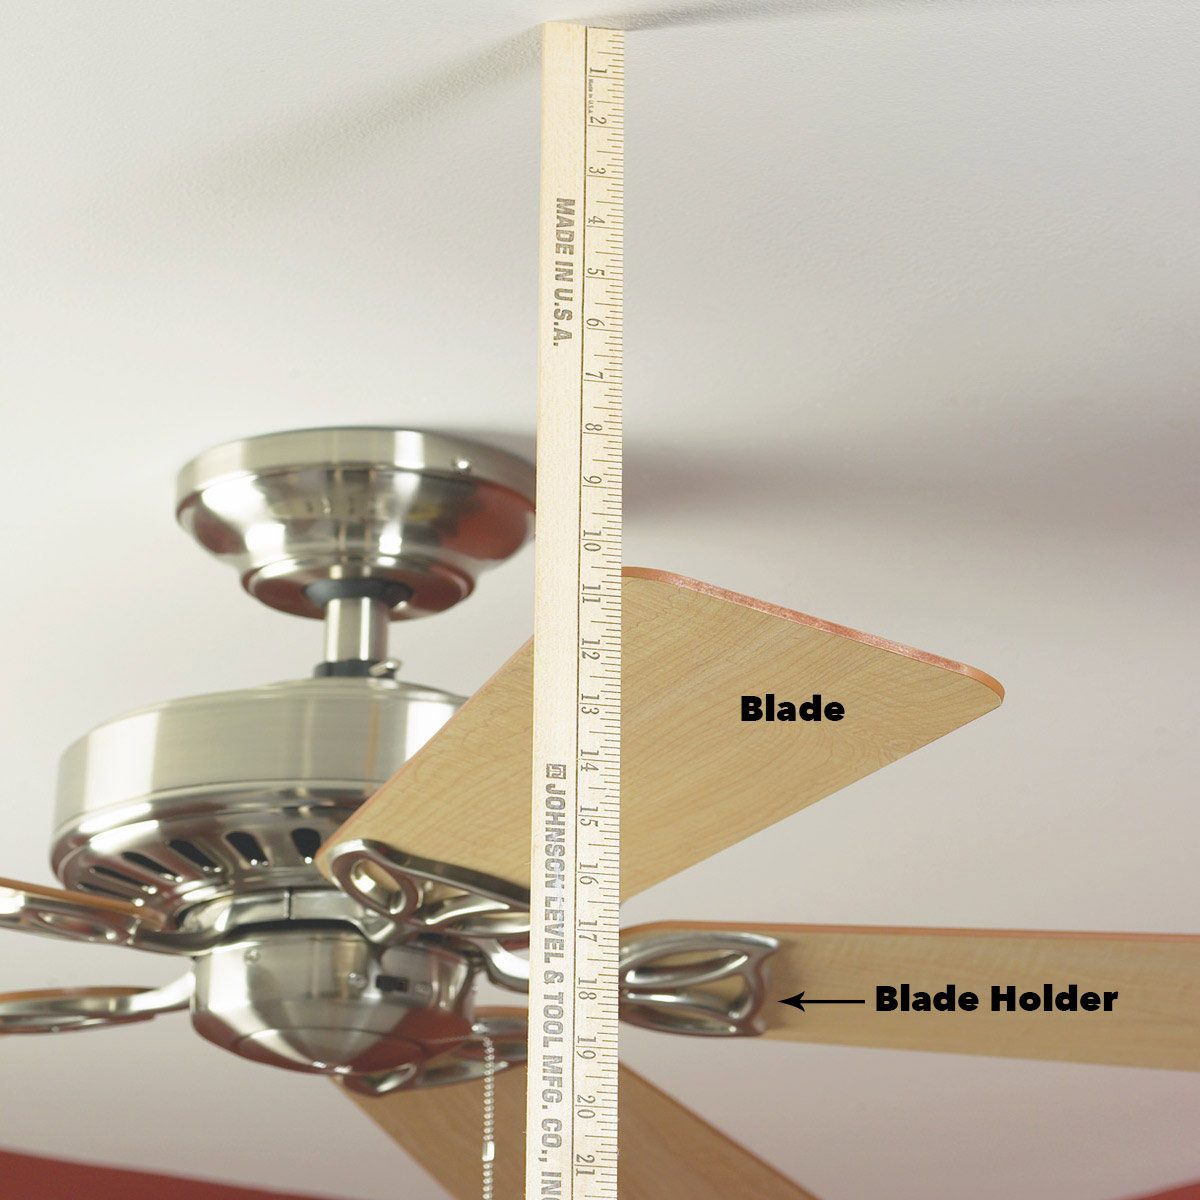 How To Balance A Ceiling Fan The Family Handyman Remote Starter Installation Video By Bulldog Security Youtube Blades